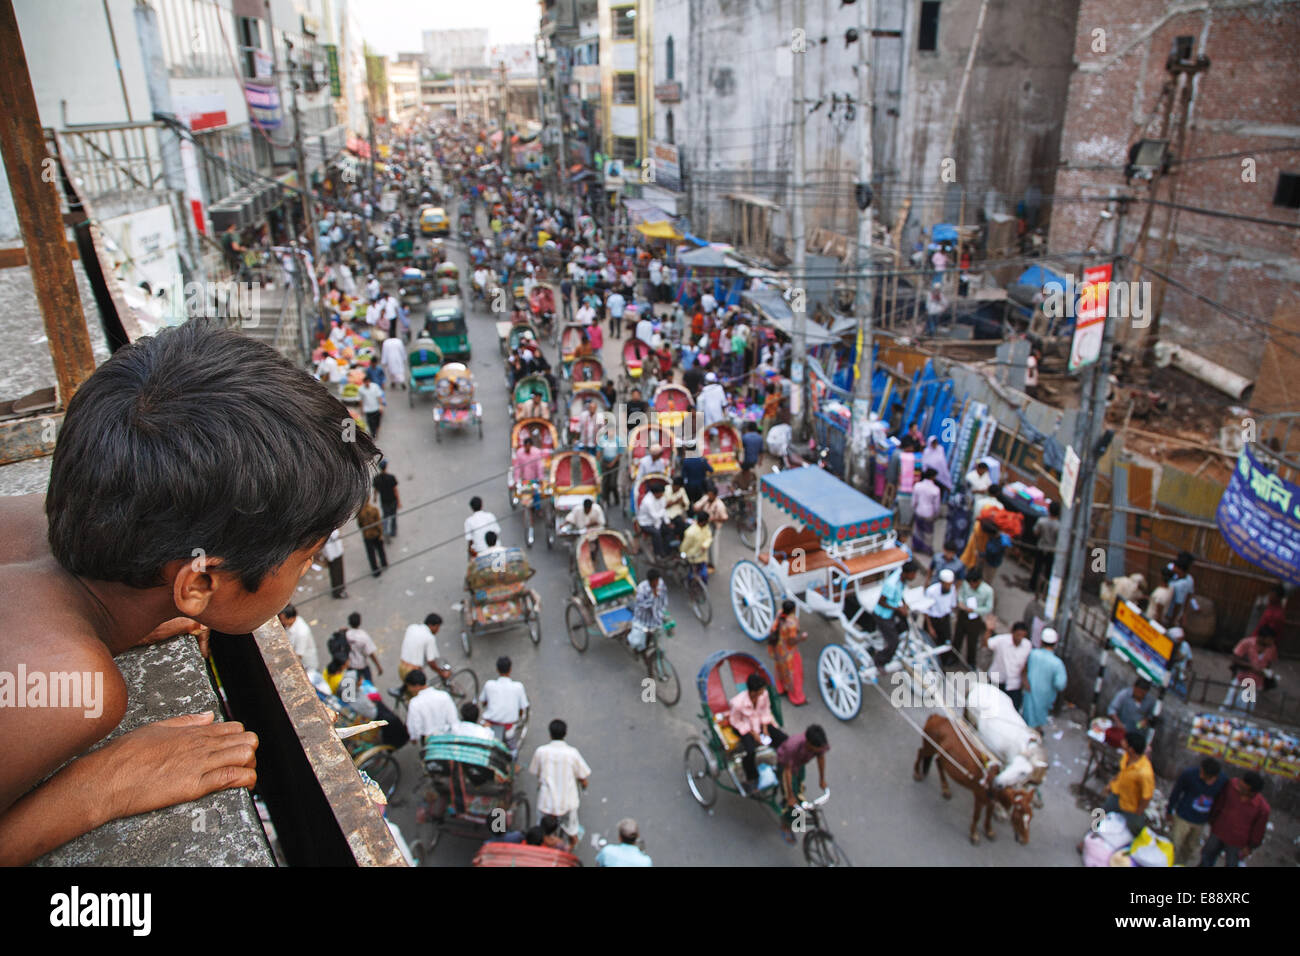 A boy watches road traffic with rickshaws on the main road in the Old City of Dhaka, Bangladesh - Stock Image